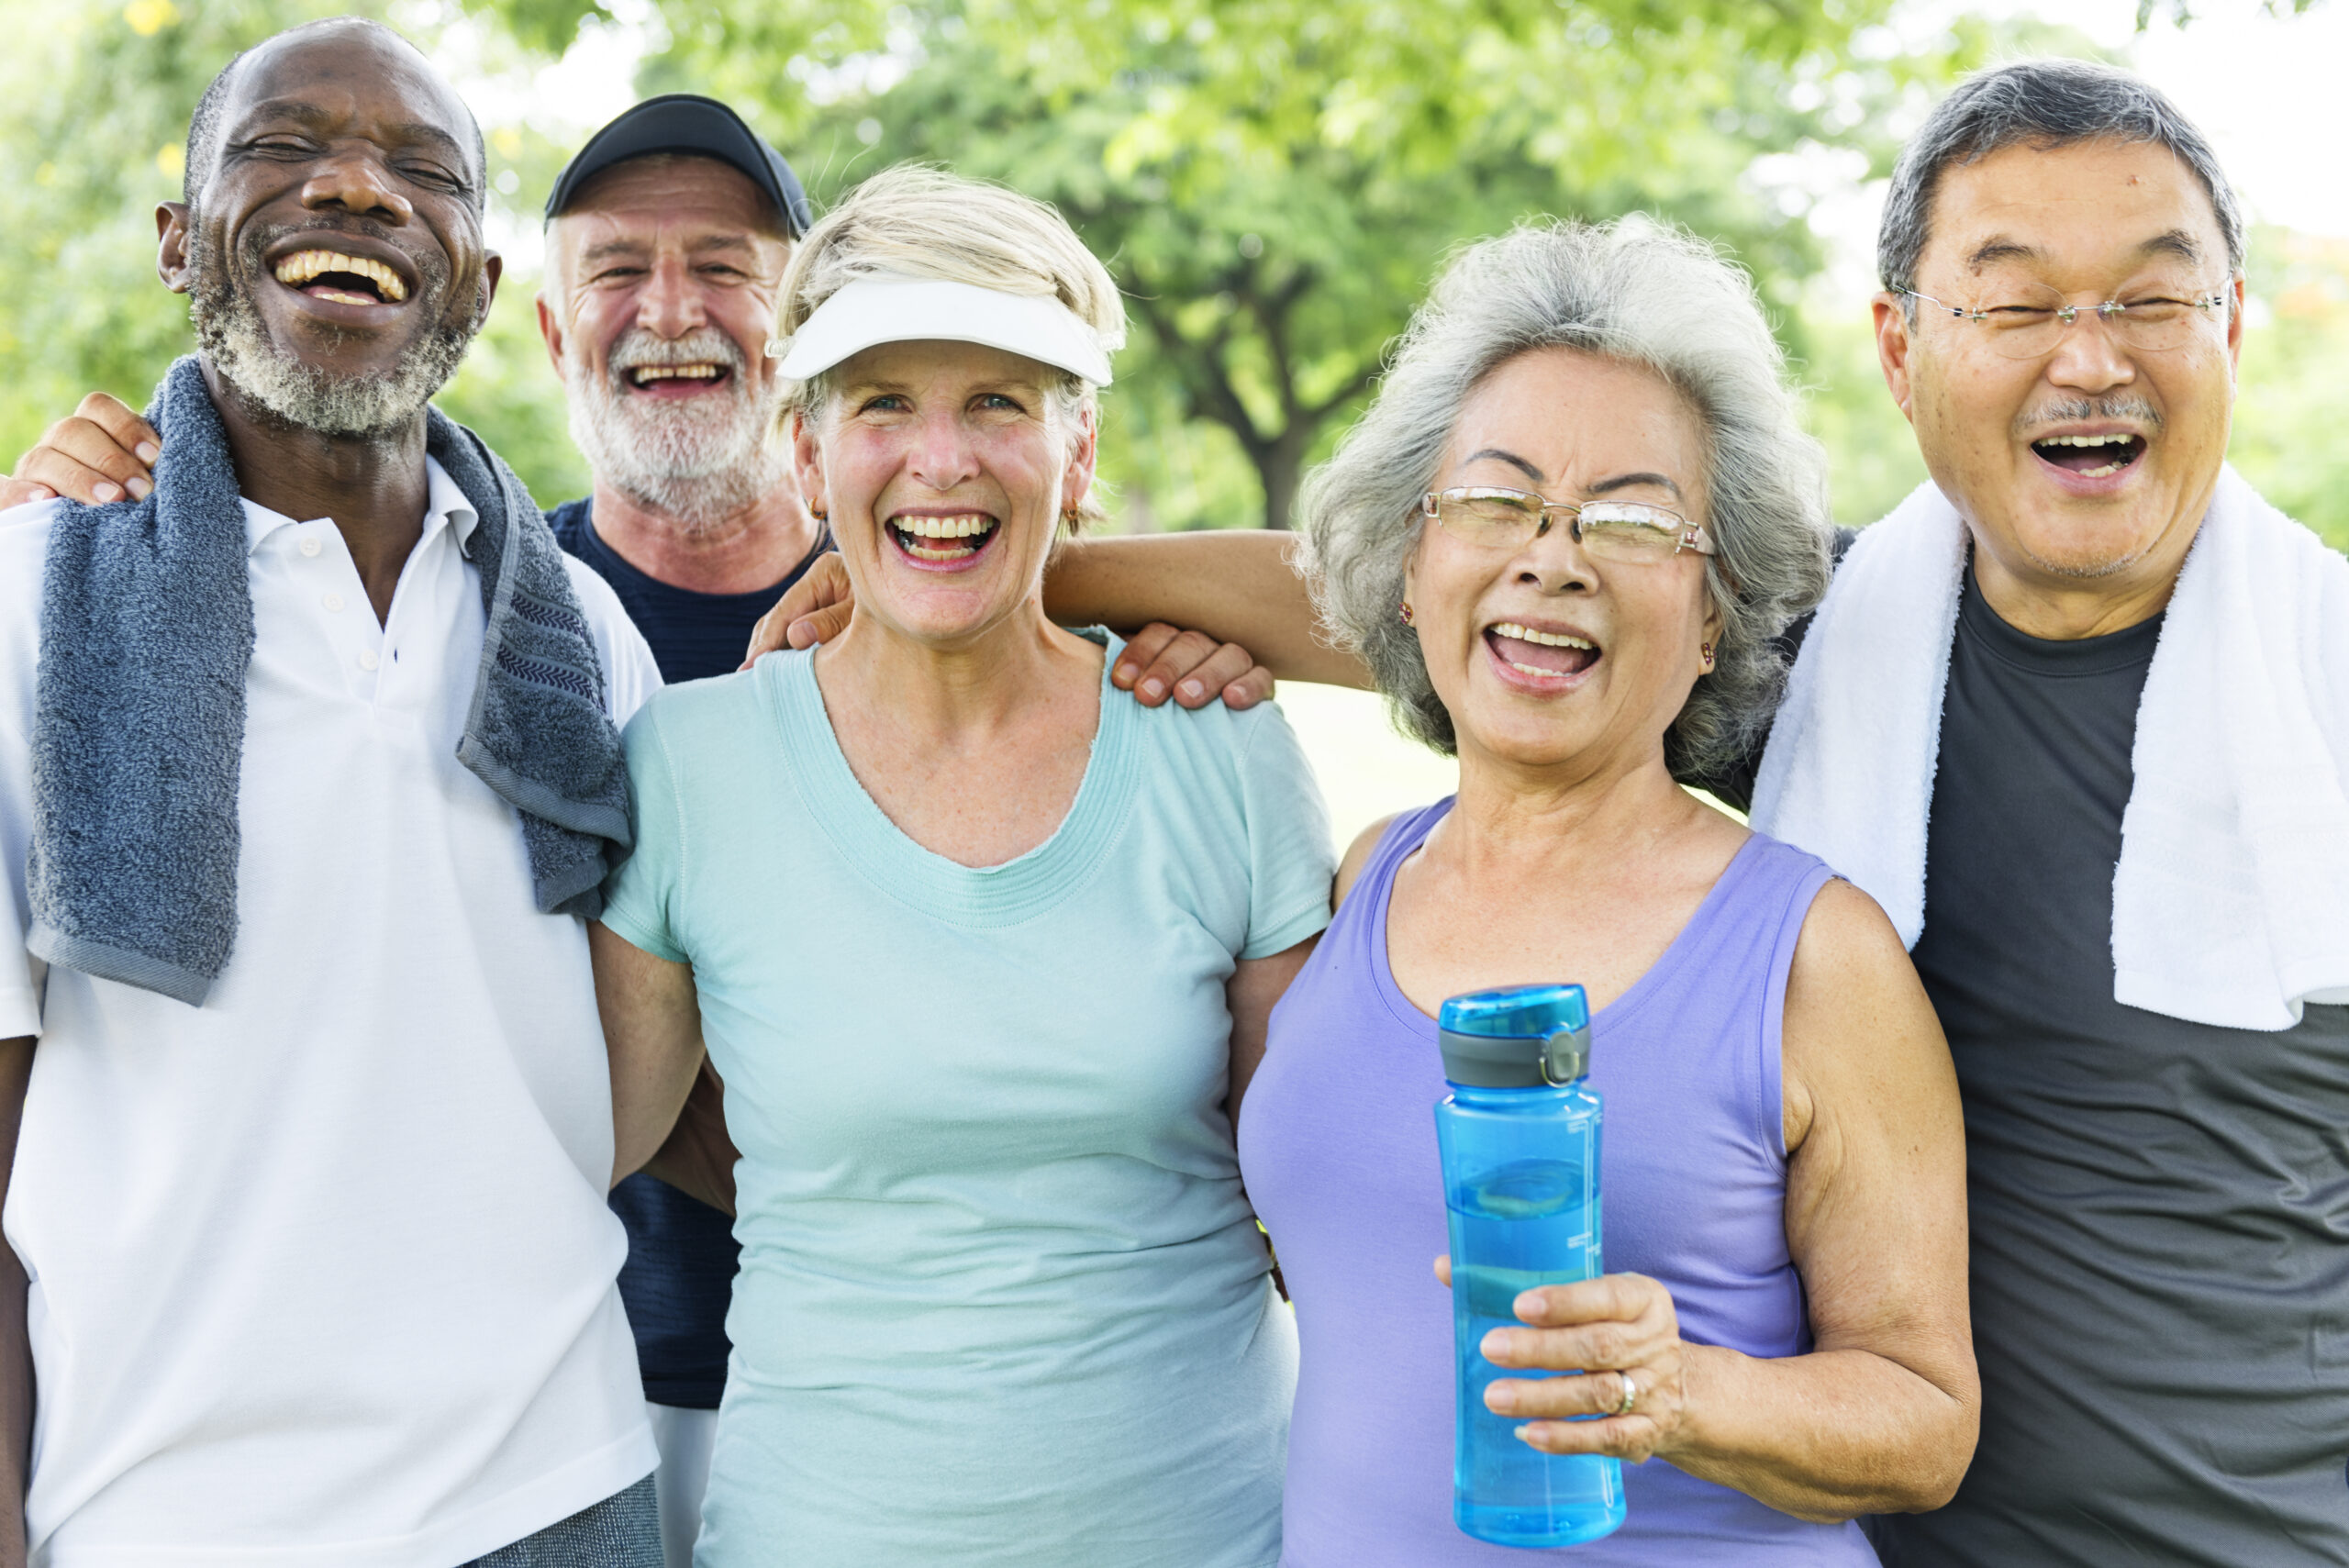 The photo shows a group of five seniors in exercise clothes who look happy.